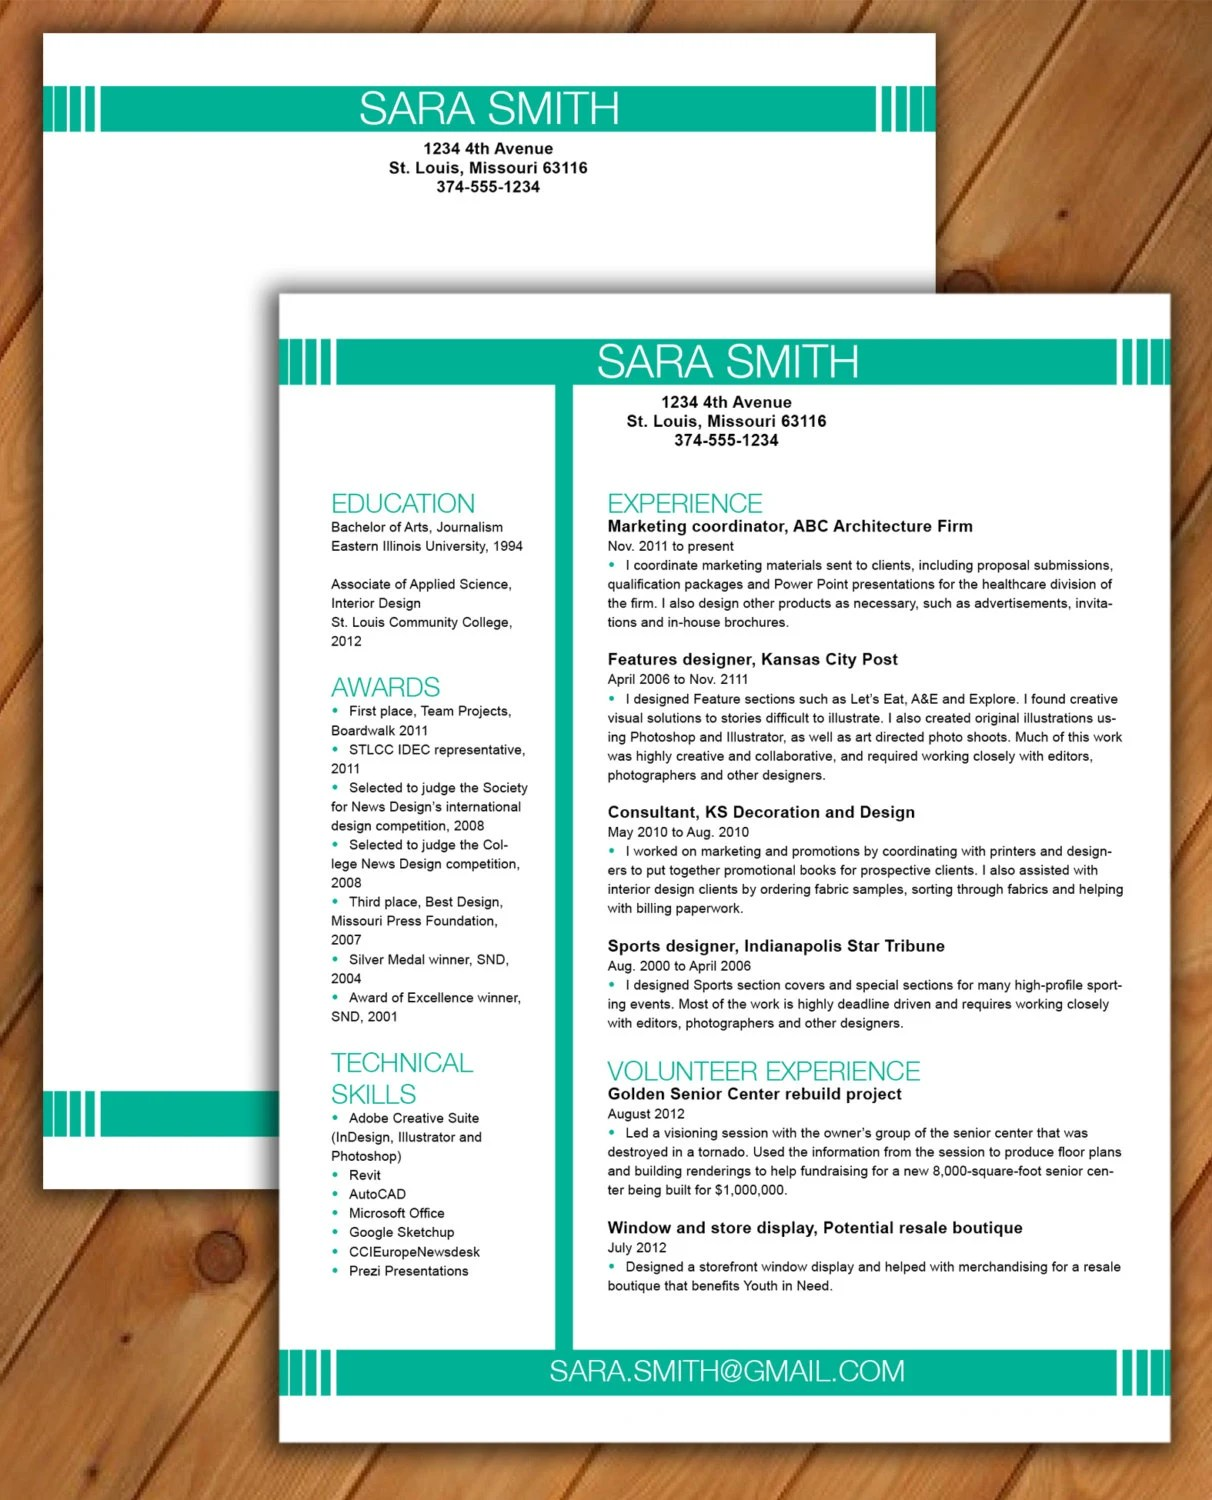 colors in resume or cover letters - Brucebrianwilliams - microsoft cover letter templates for resume